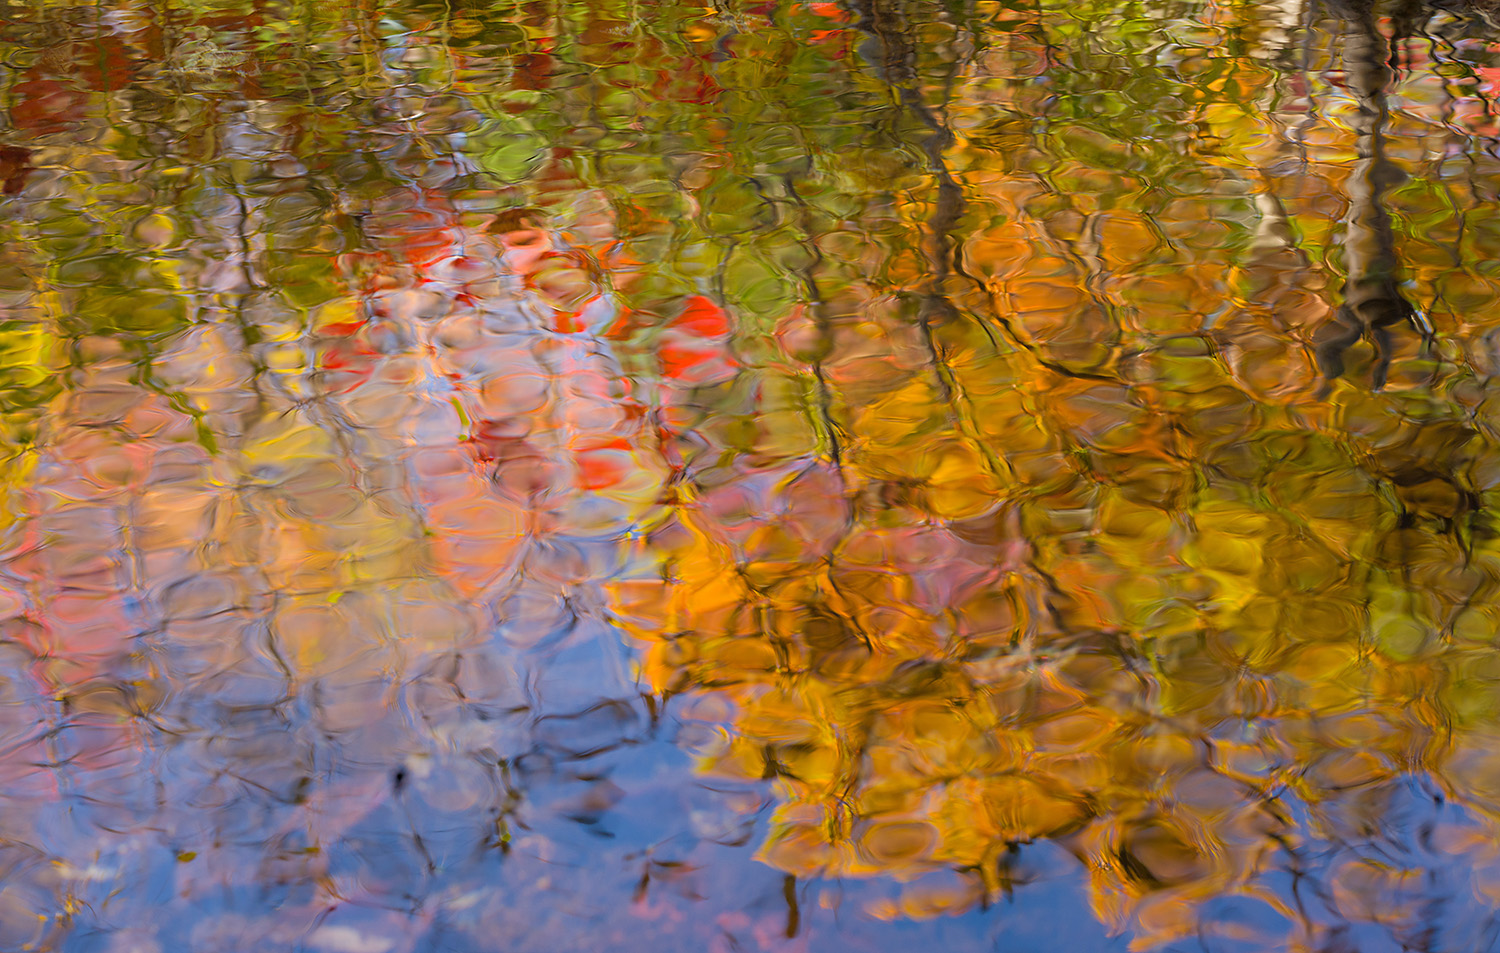 Abstract Reflections, Duck Brook, Acadia National Park